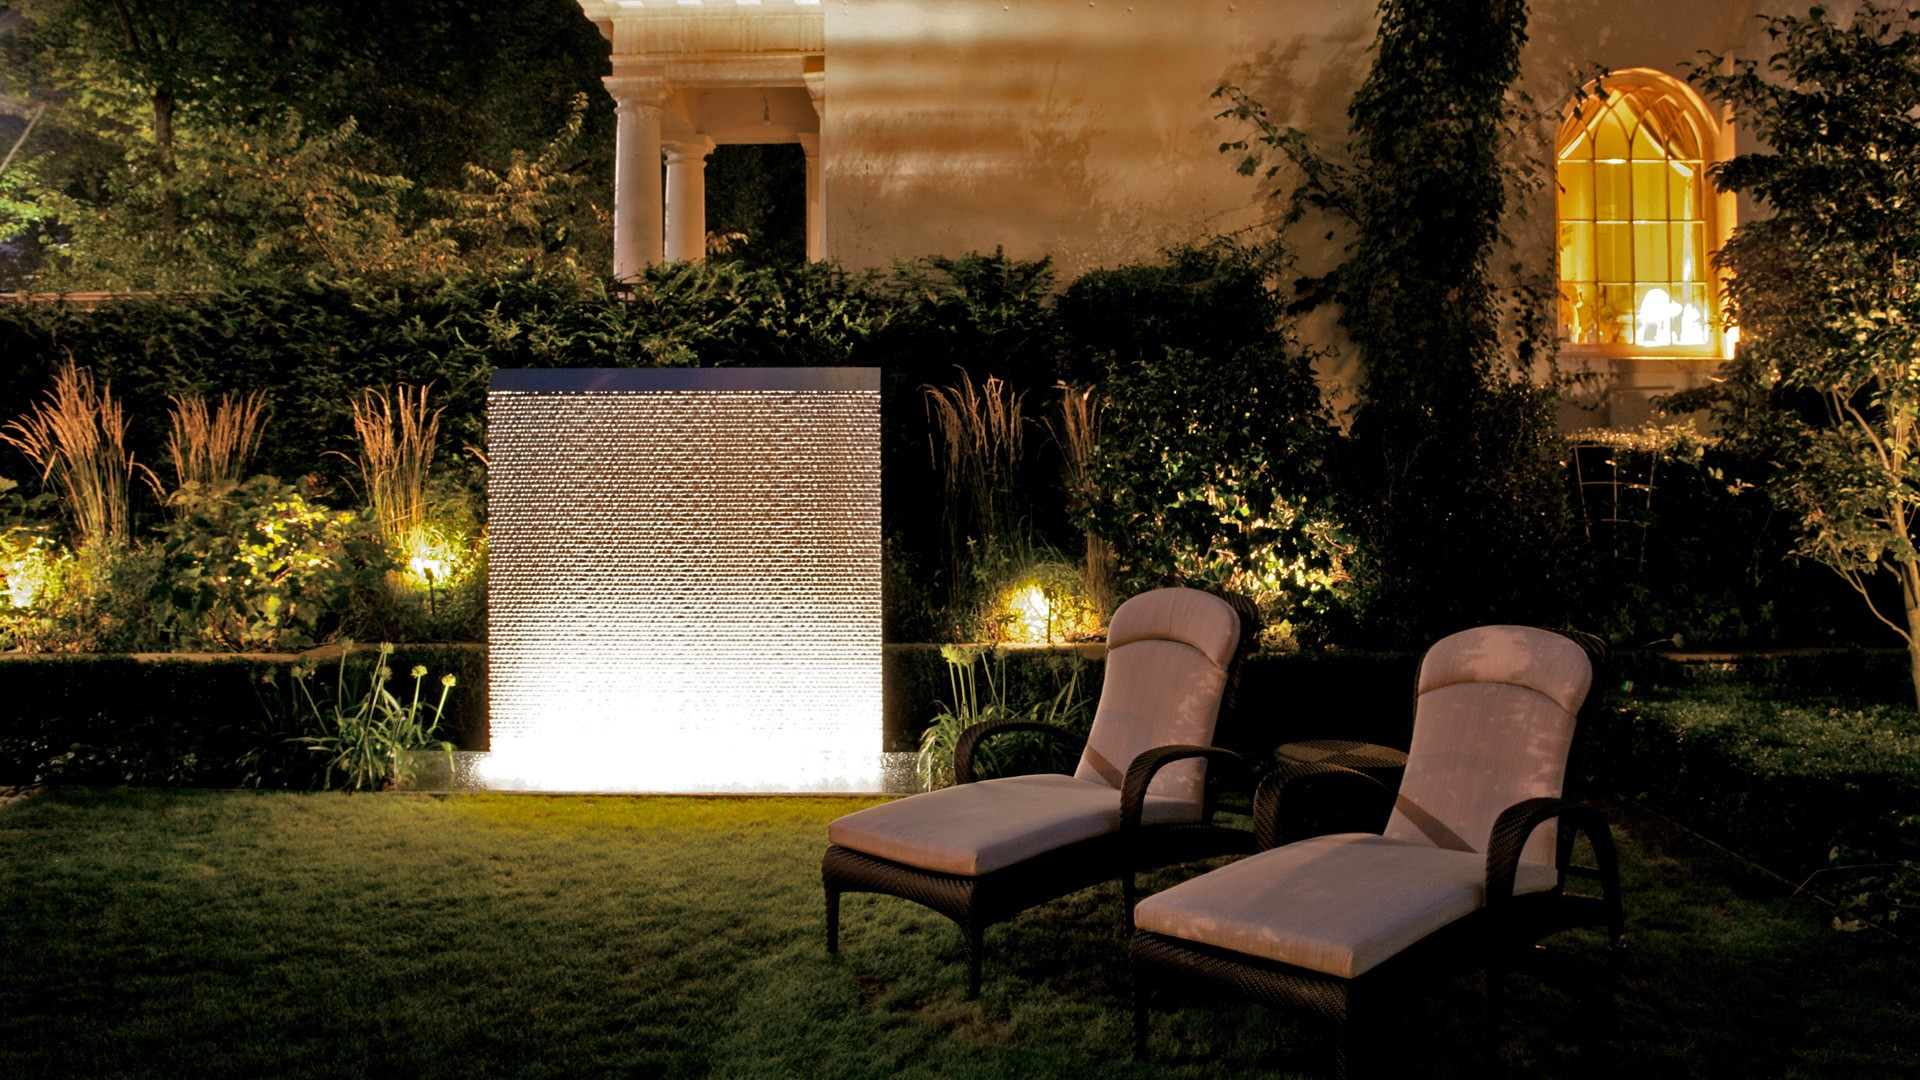 Enhance your garden's ambiance